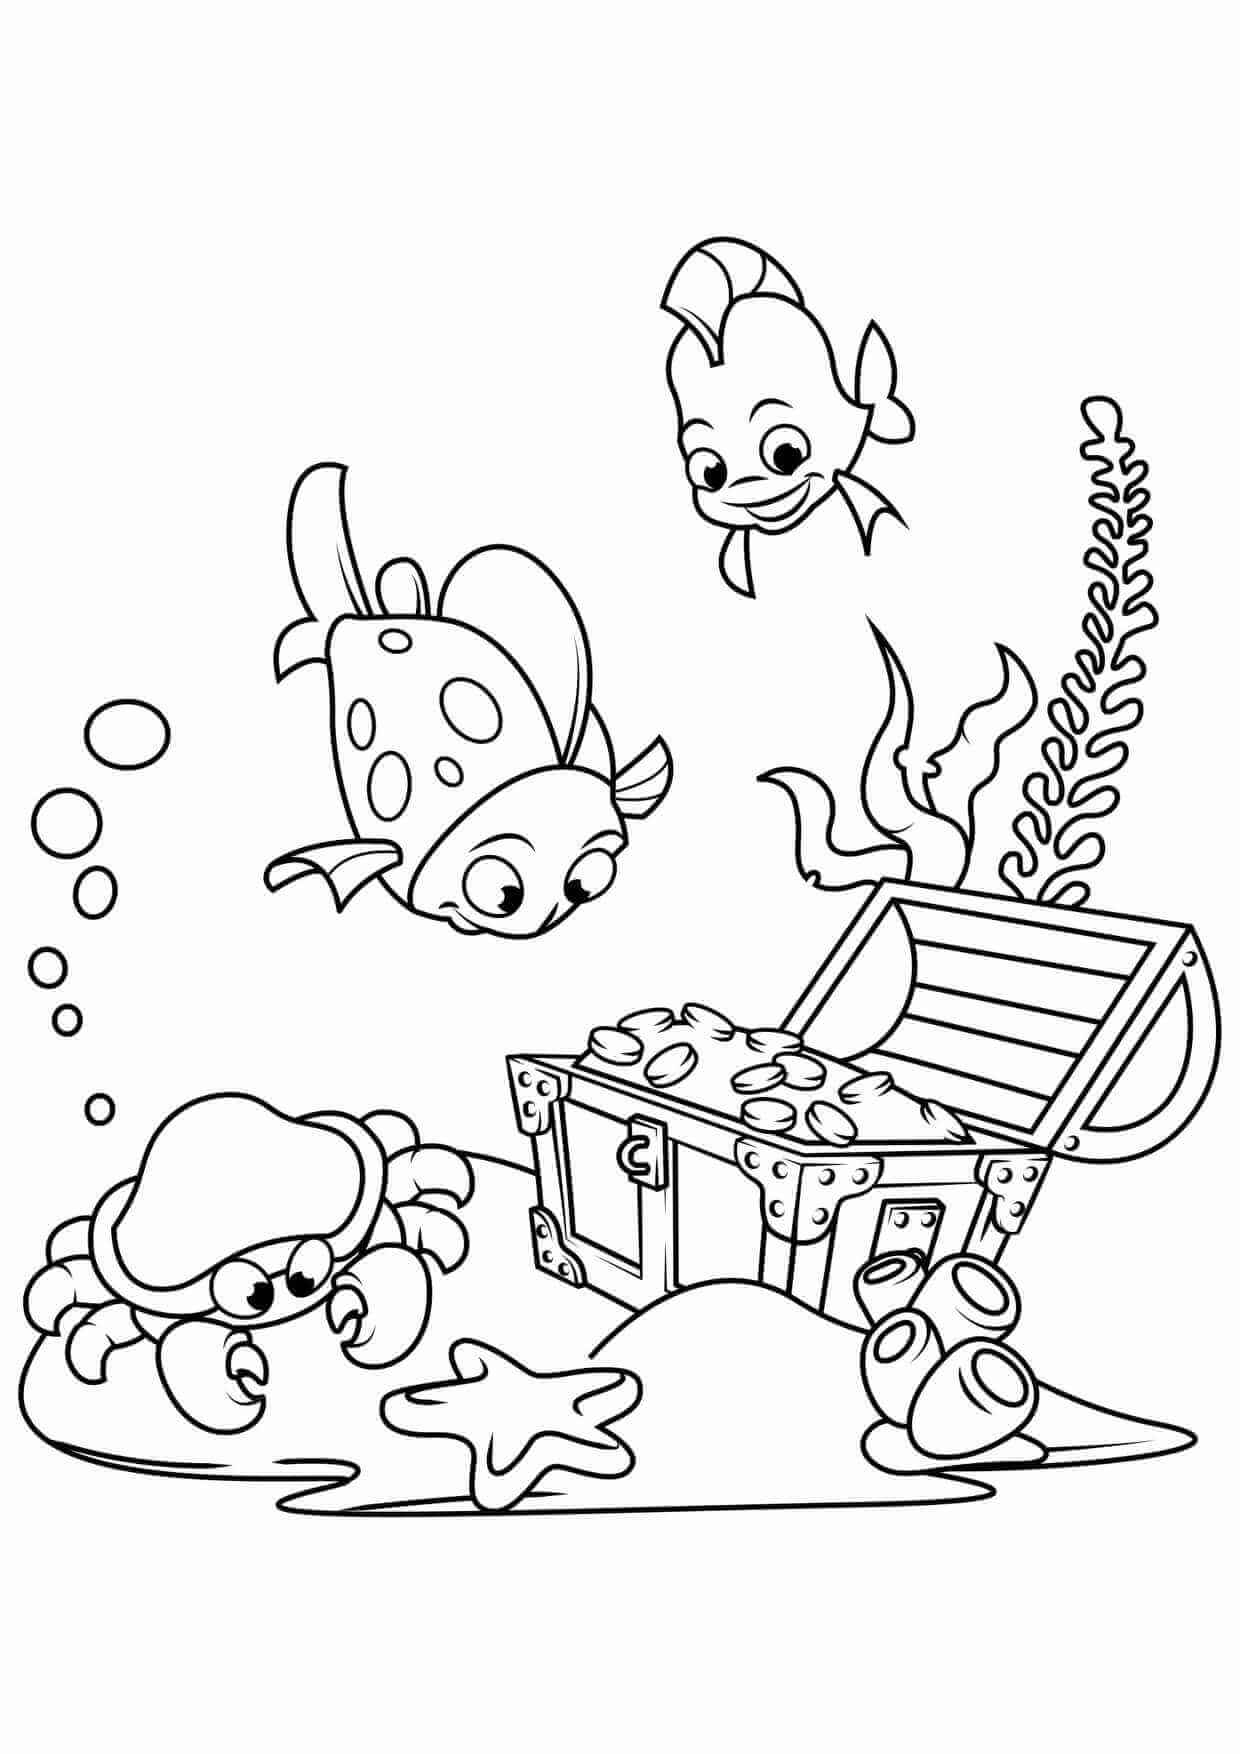 coloring pages women detailed coloring pages for girls at getcoloringscom coloring women pages